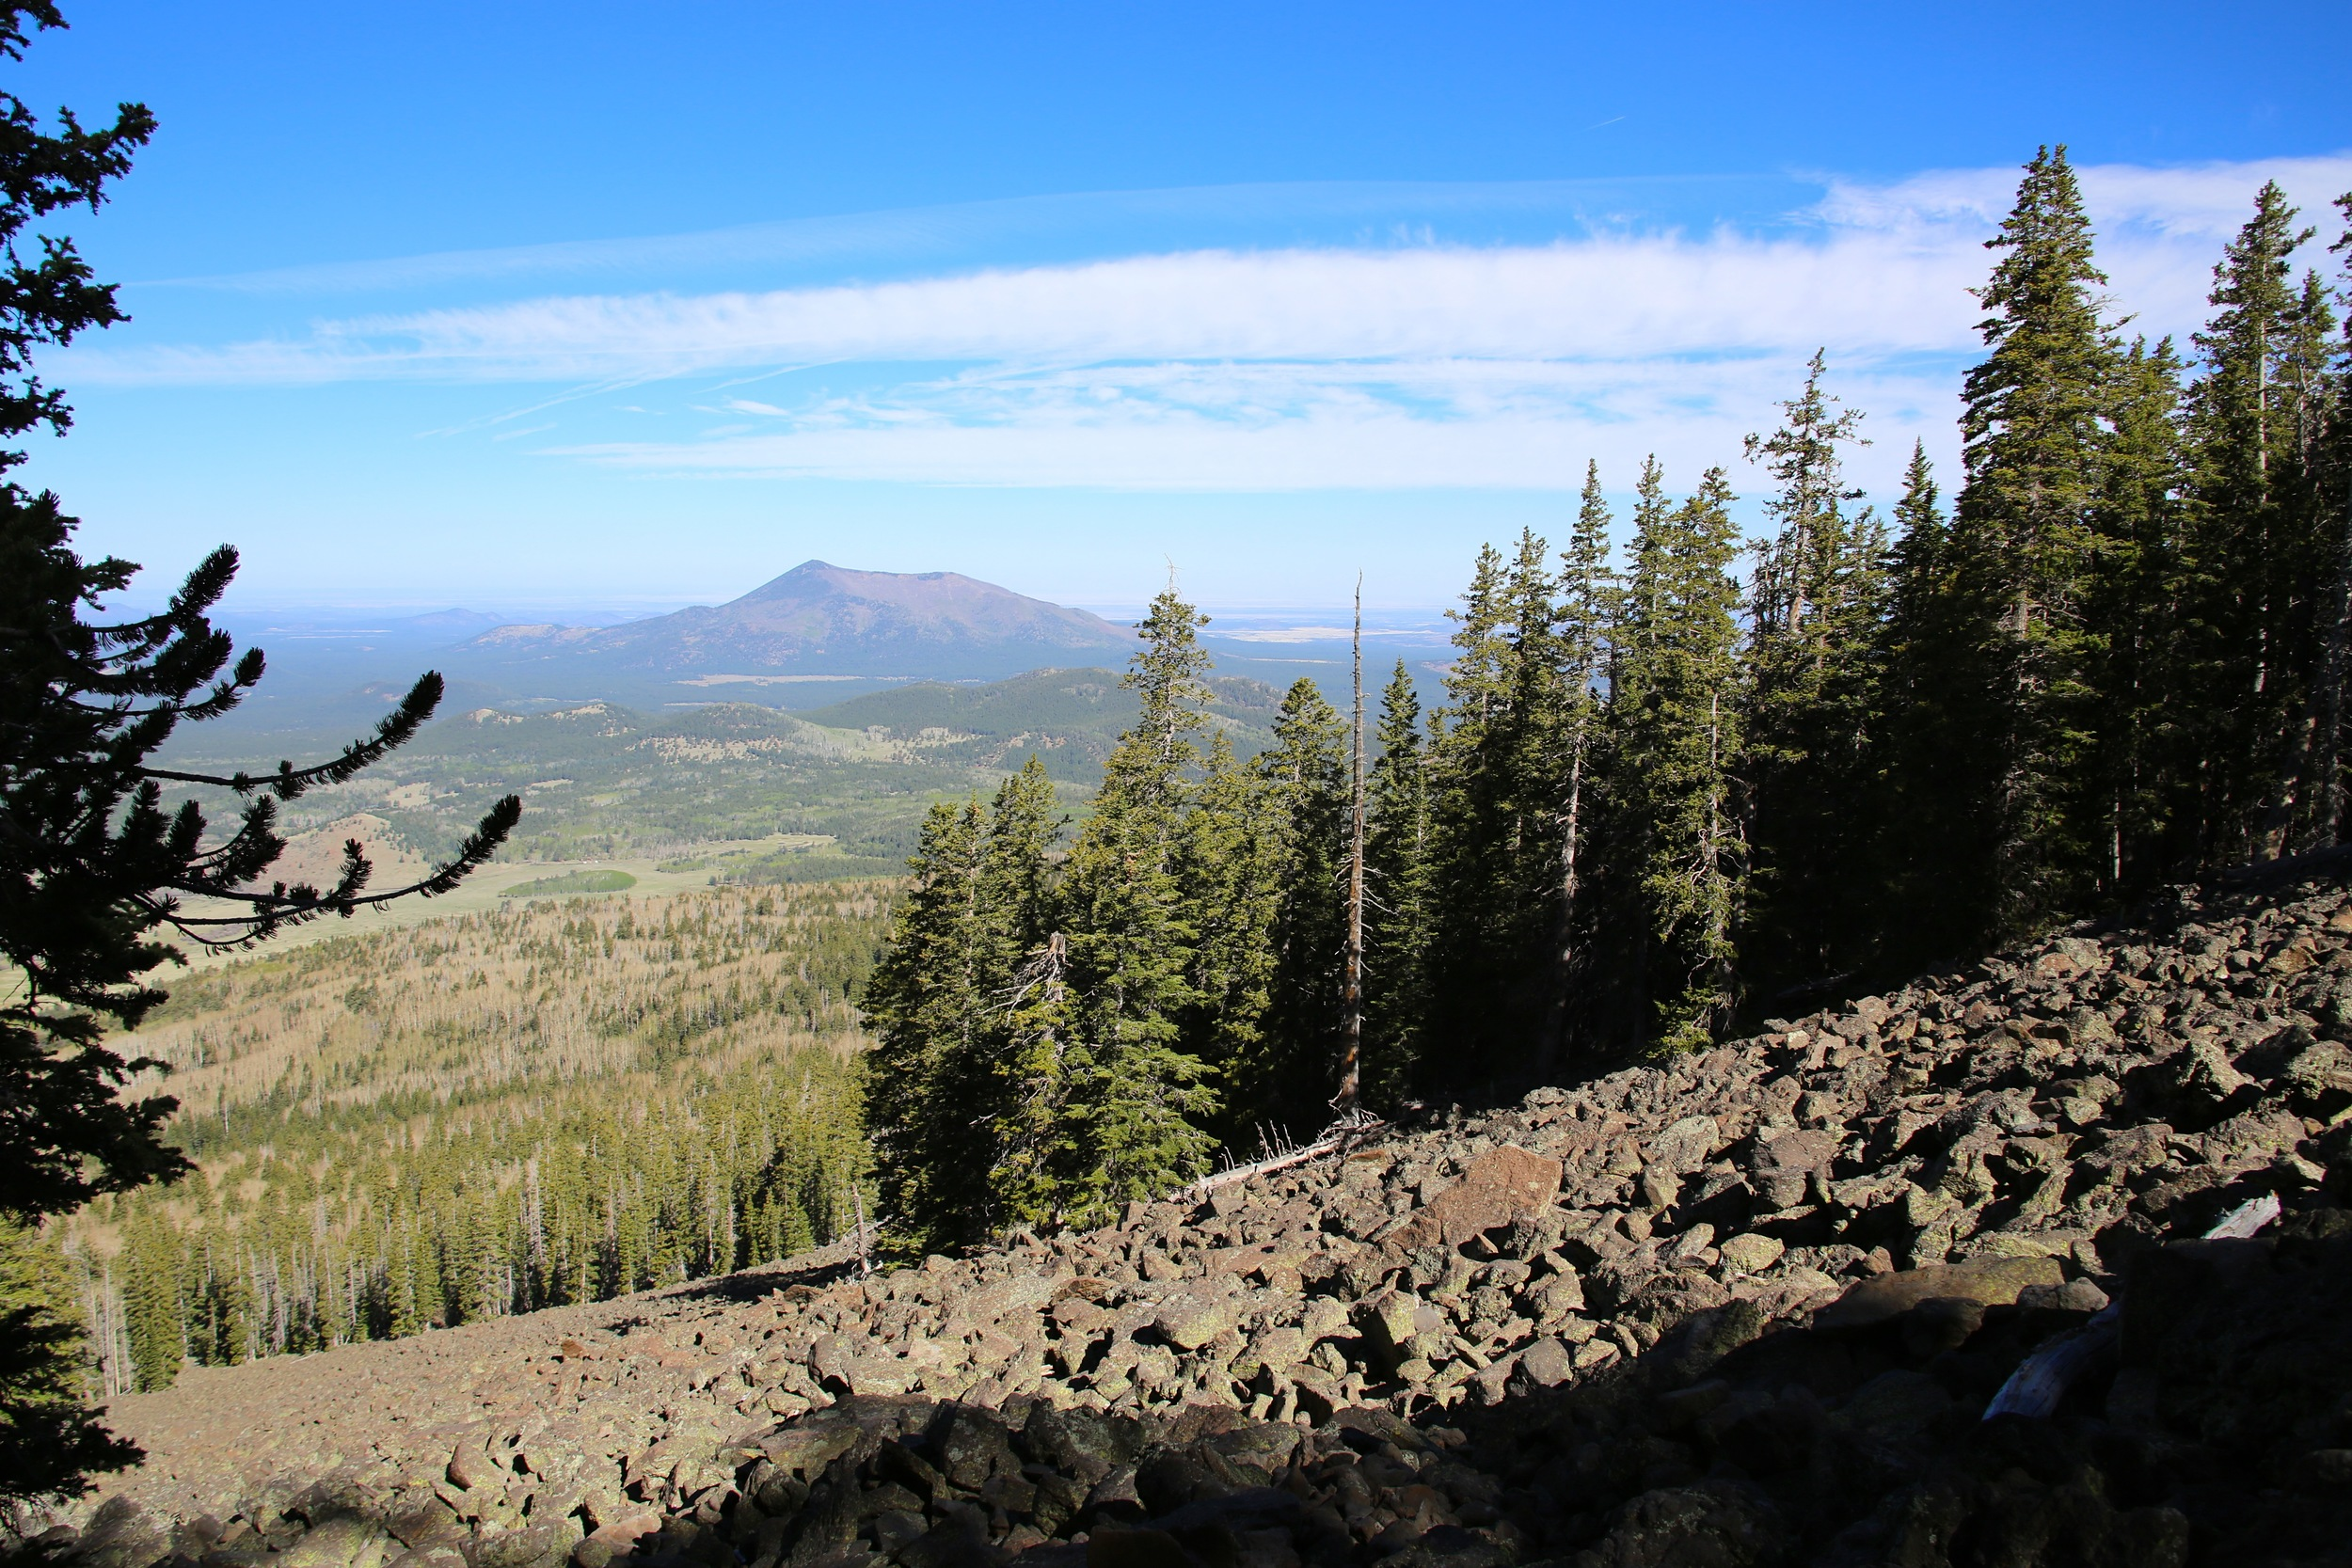 Kendrick Mountain (10400') as seen from a massive talus field on Humphreys Peak. Kendrick Mountain is another great local hike.